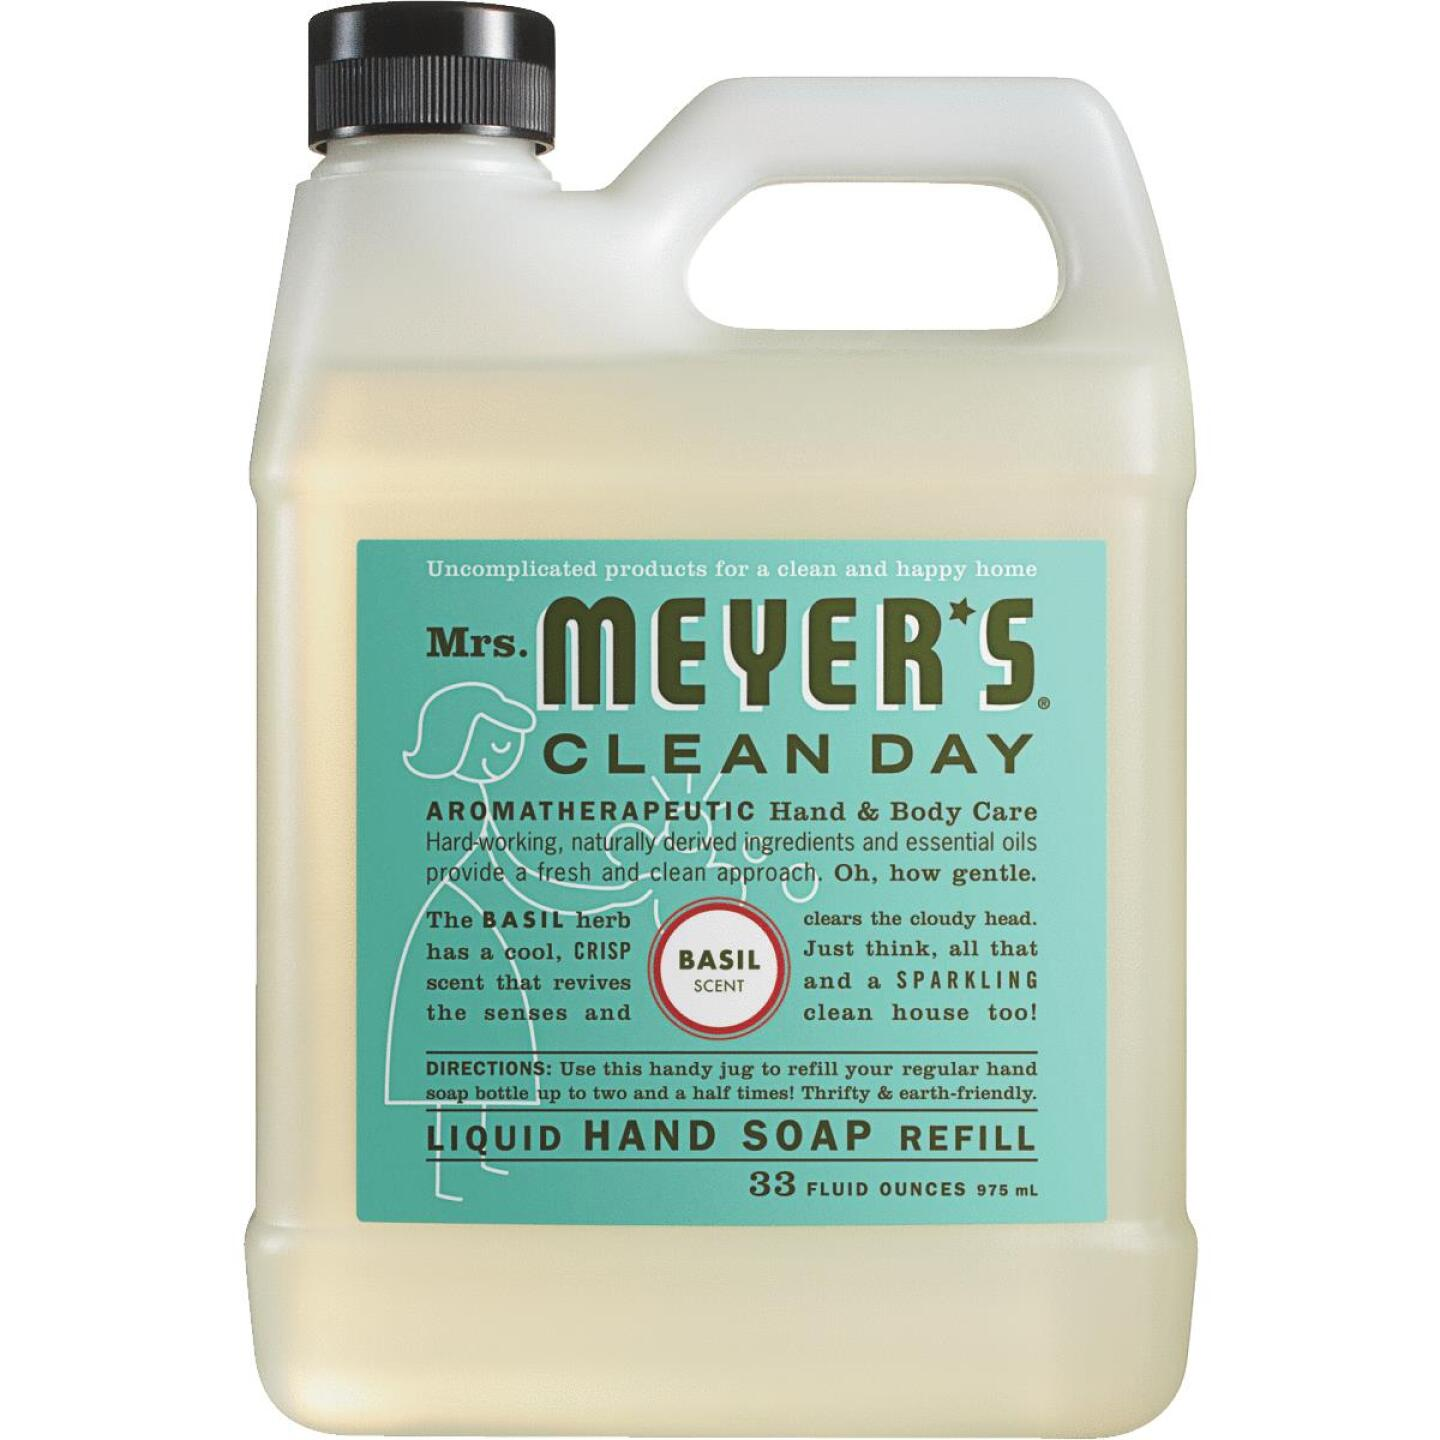 Mrs. Meyer's Clean Day 33 Oz. Basil Liquid Hand Soap Refill Image 1